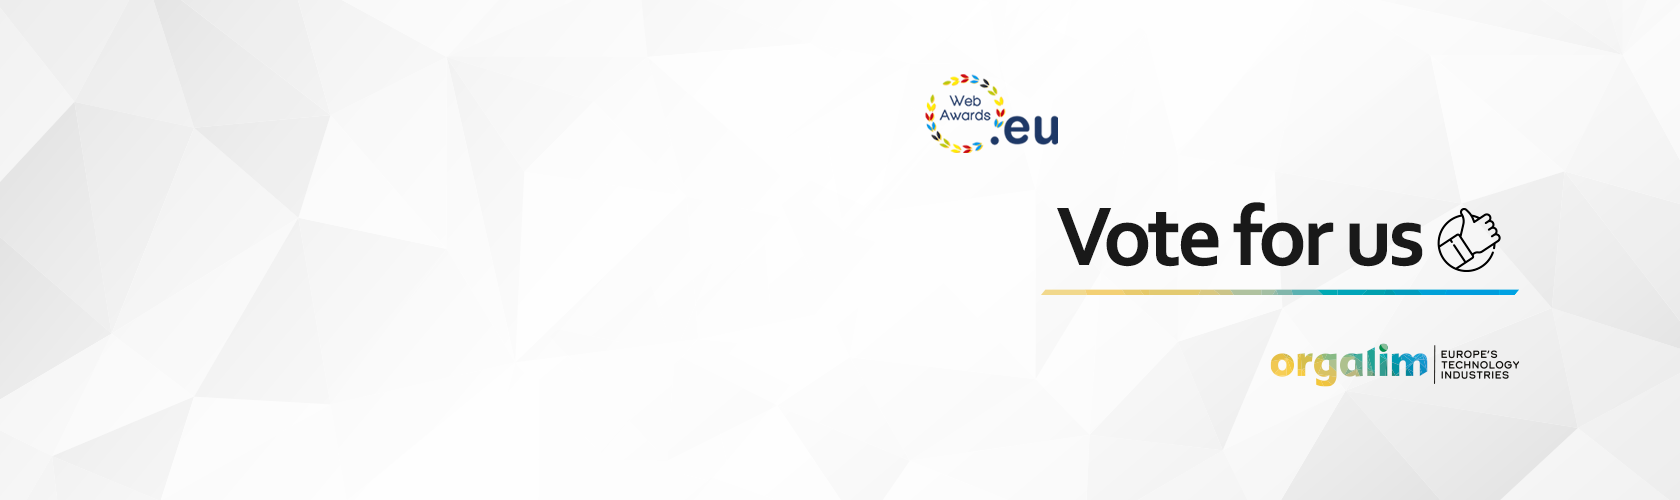 Vote for Orgalim in the 2020 .eu Web Awards!